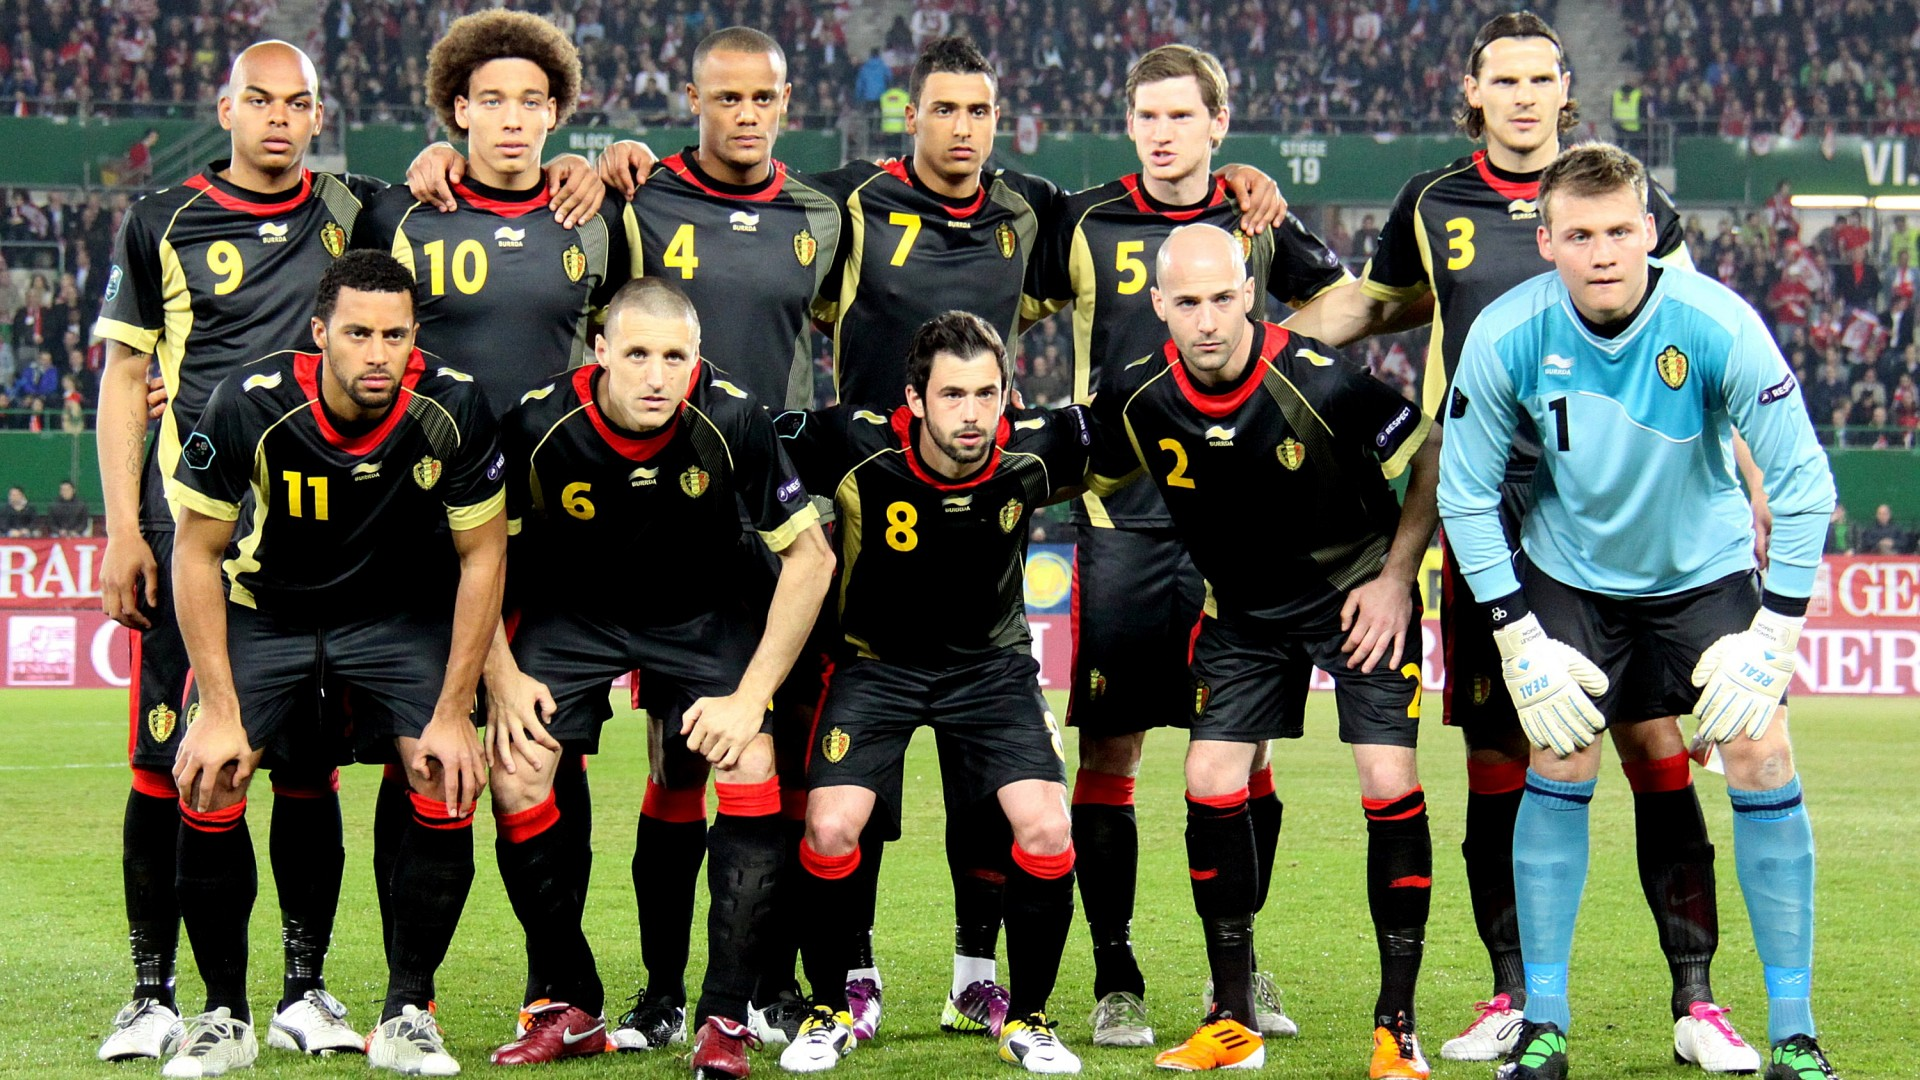 e48f9278d Belgium 2014 Brazil World Cup - HD Wallpapers